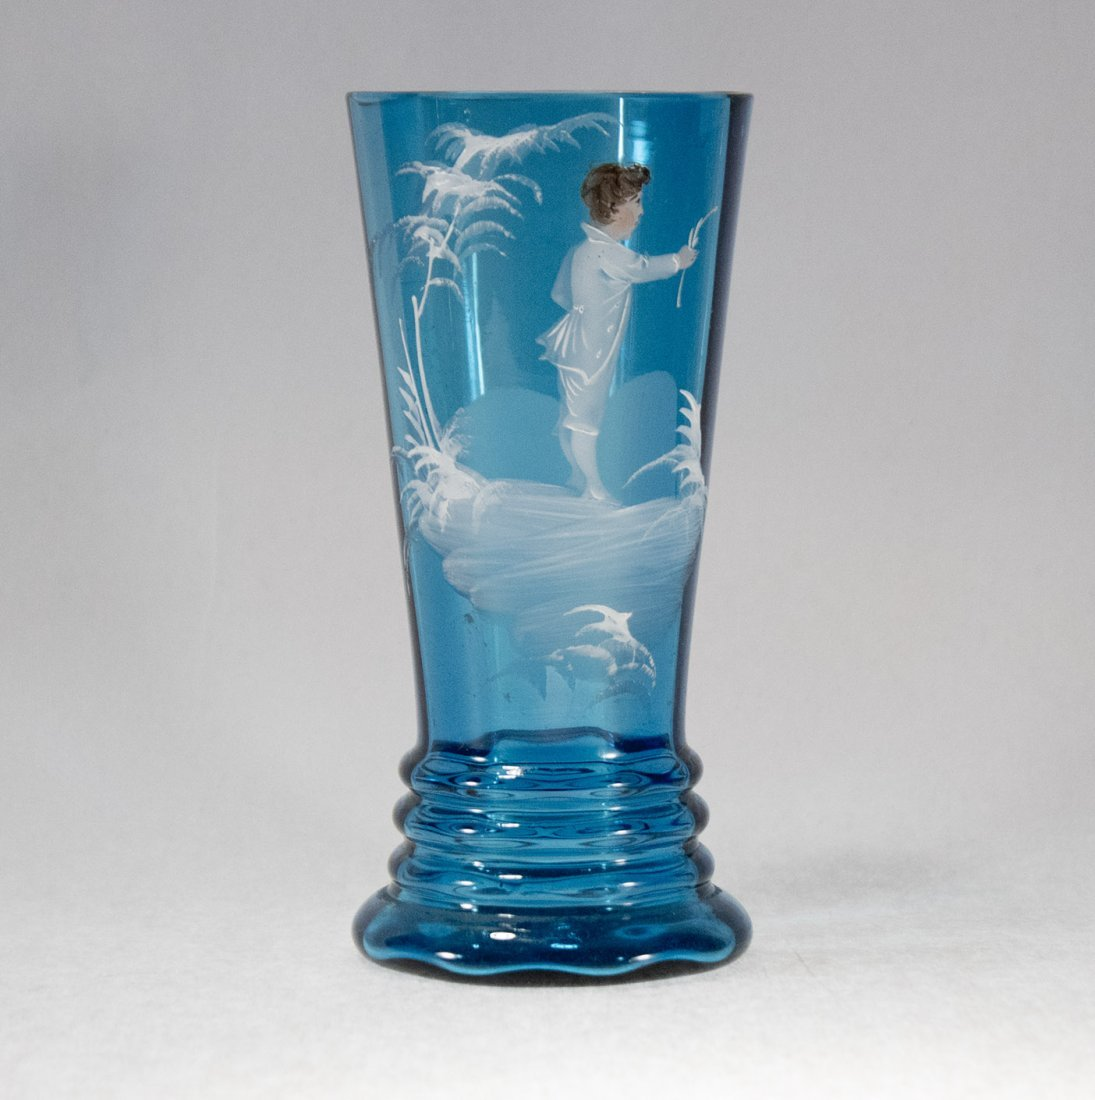 MARY GREGORY Teal Blue Glass Vase Young Boy in White